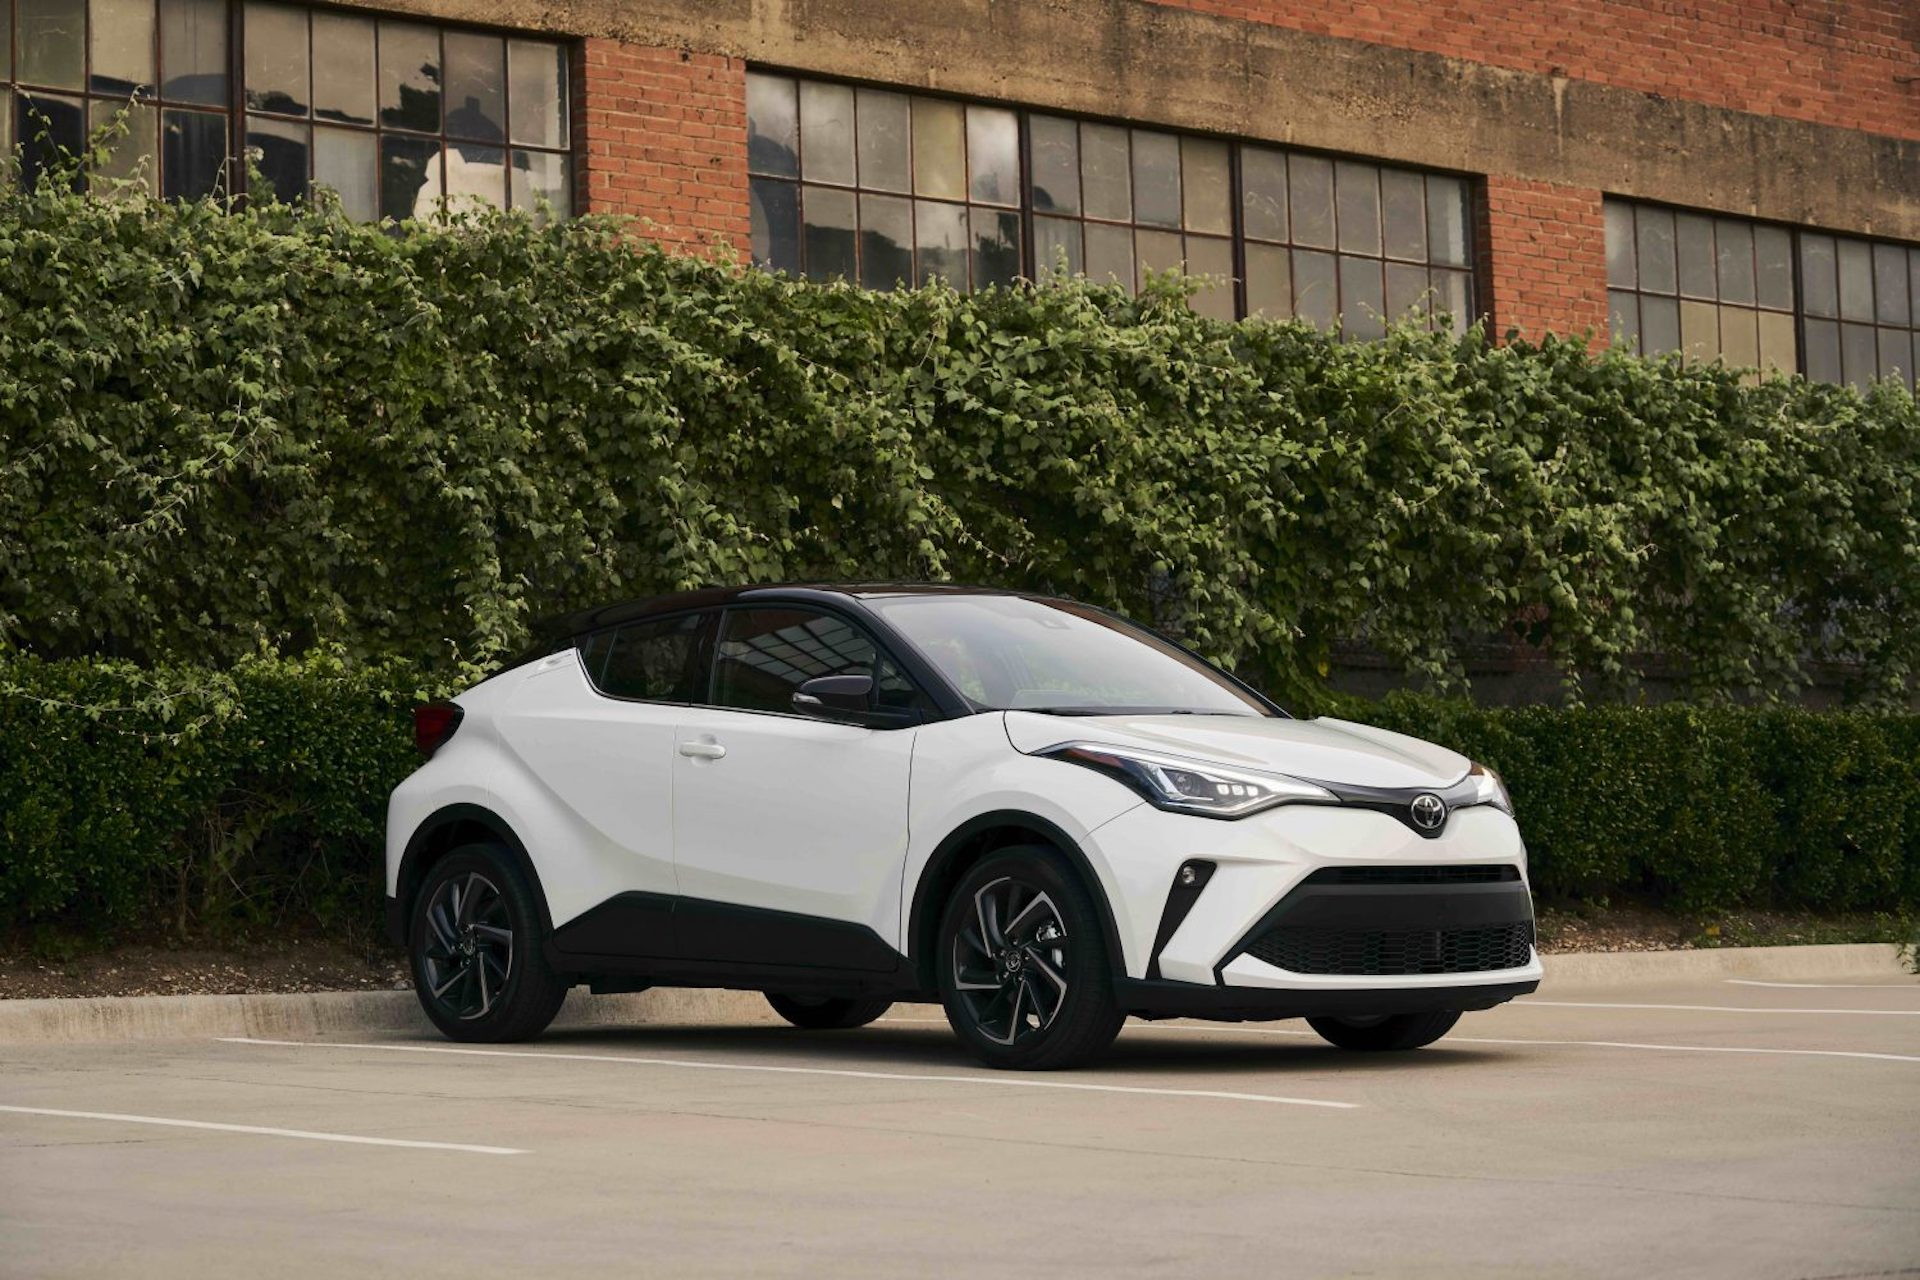 5 Toyota C-HR Review, Ratings, Specs, Prices, and Photos - The